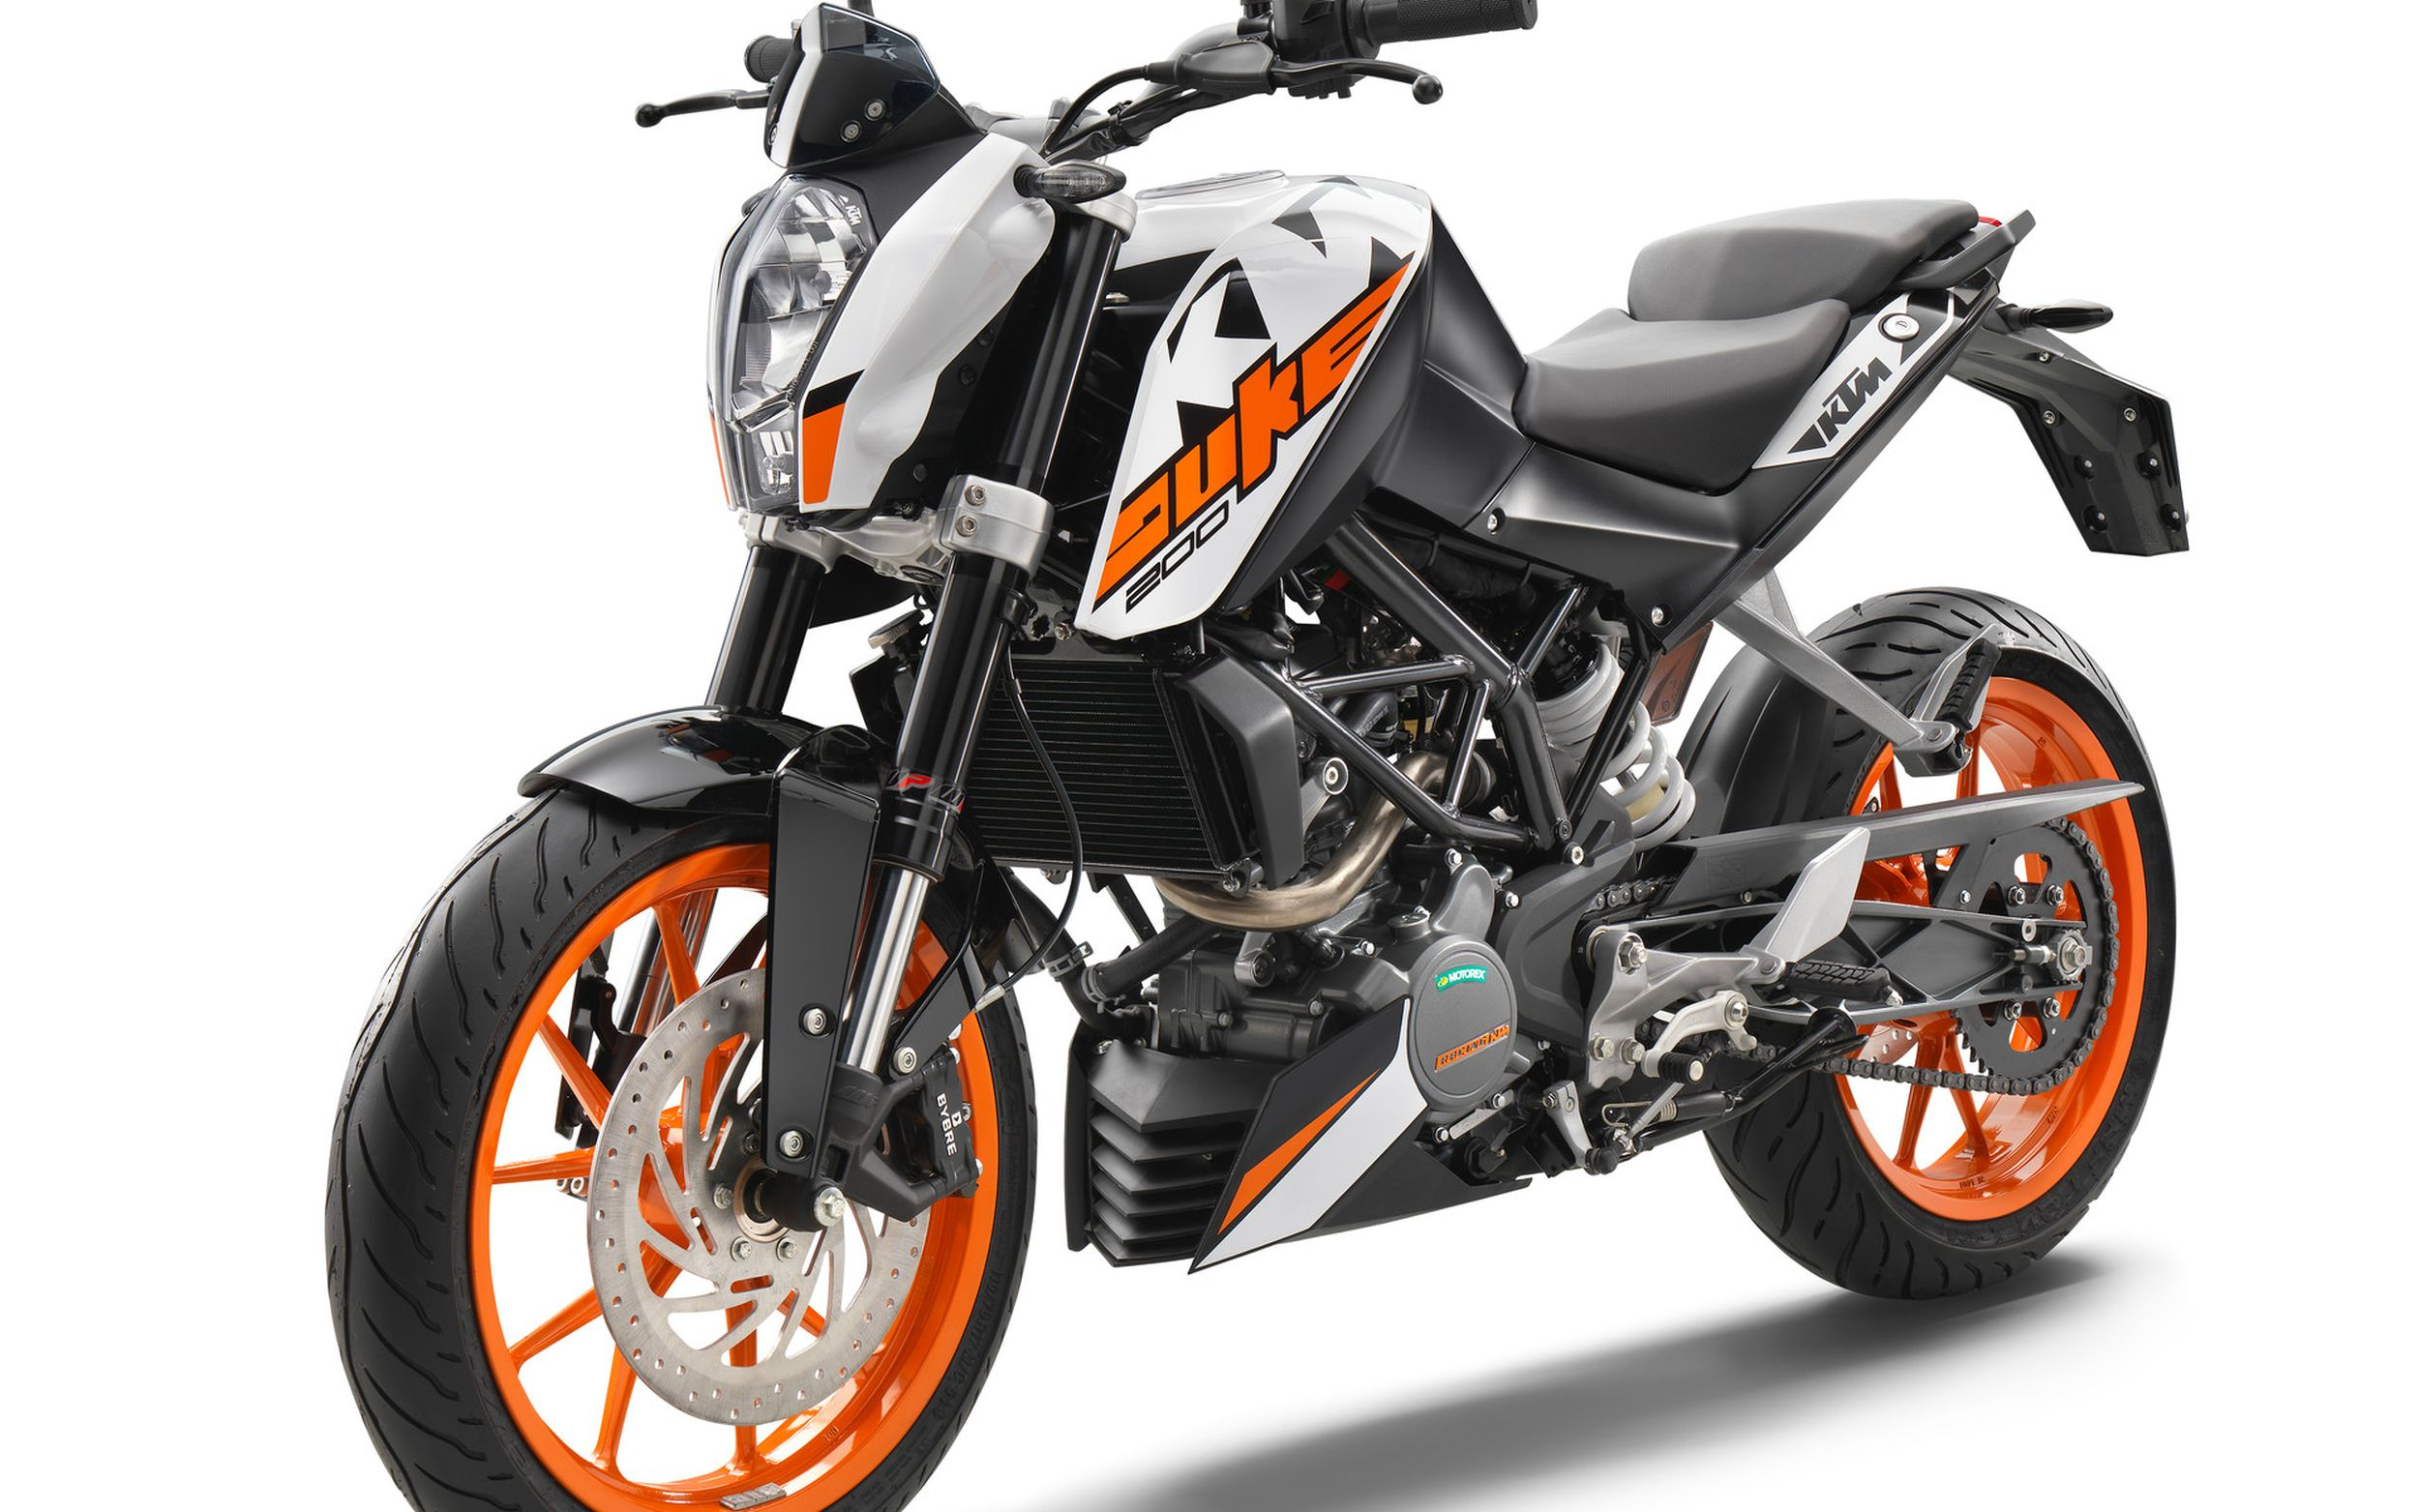 motorrad occasion ktm 200 duke kaufen. Black Bedroom Furniture Sets. Home Design Ideas